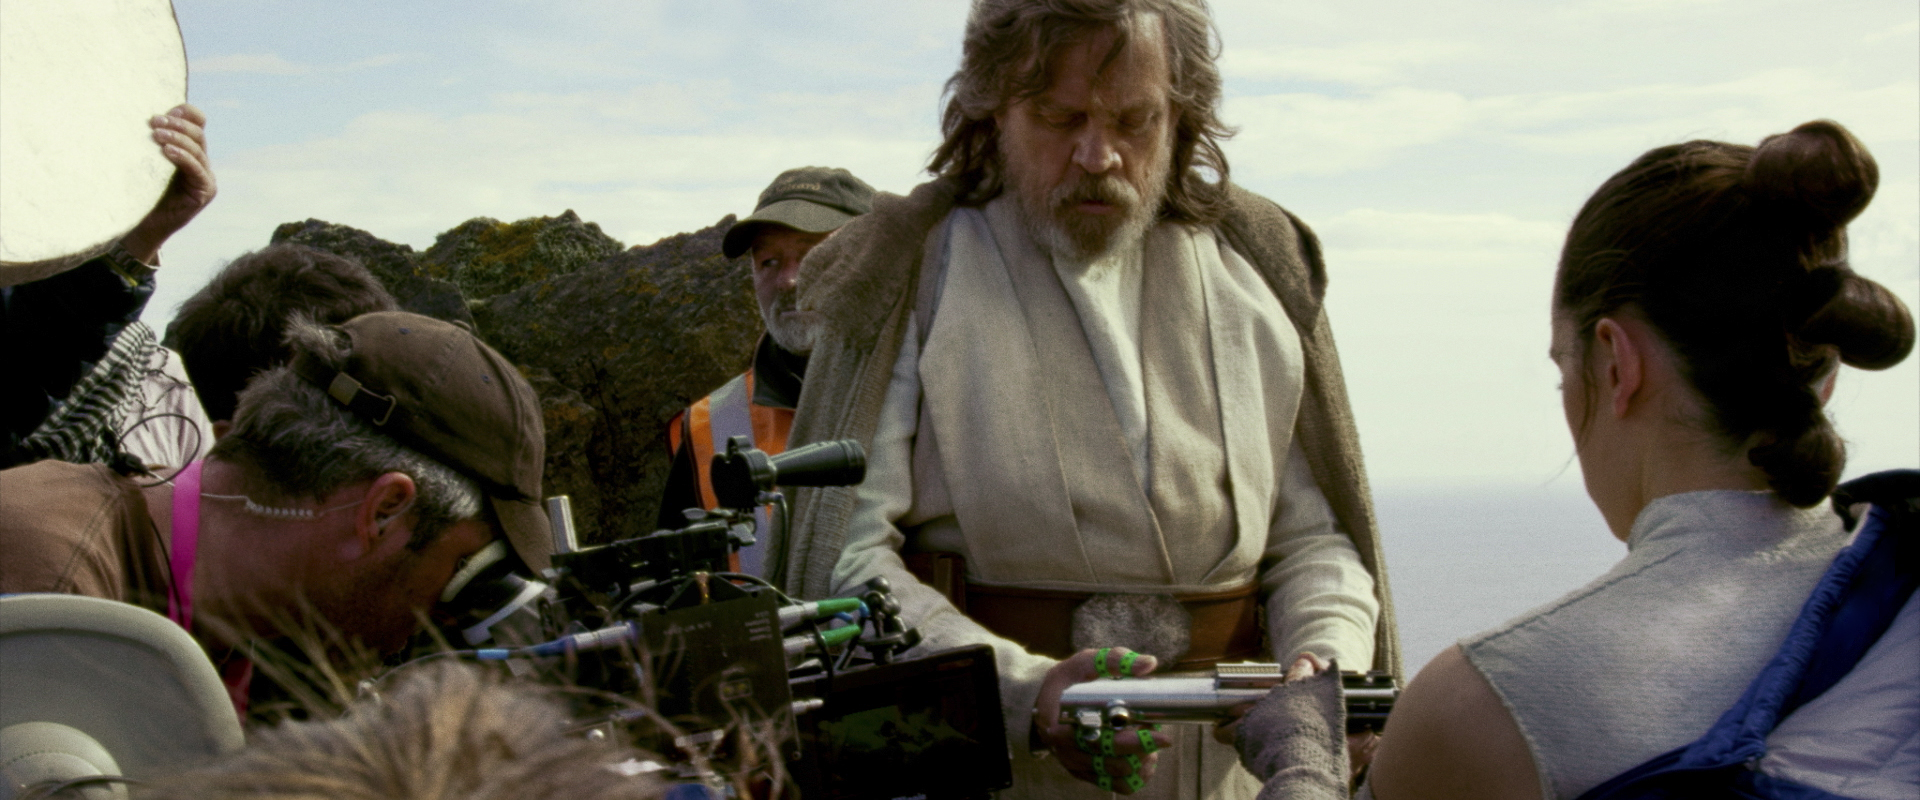 The legend of Luke Skywalker and how Star Wars: The Last Jedi is surprisingly metafictional and self-examining